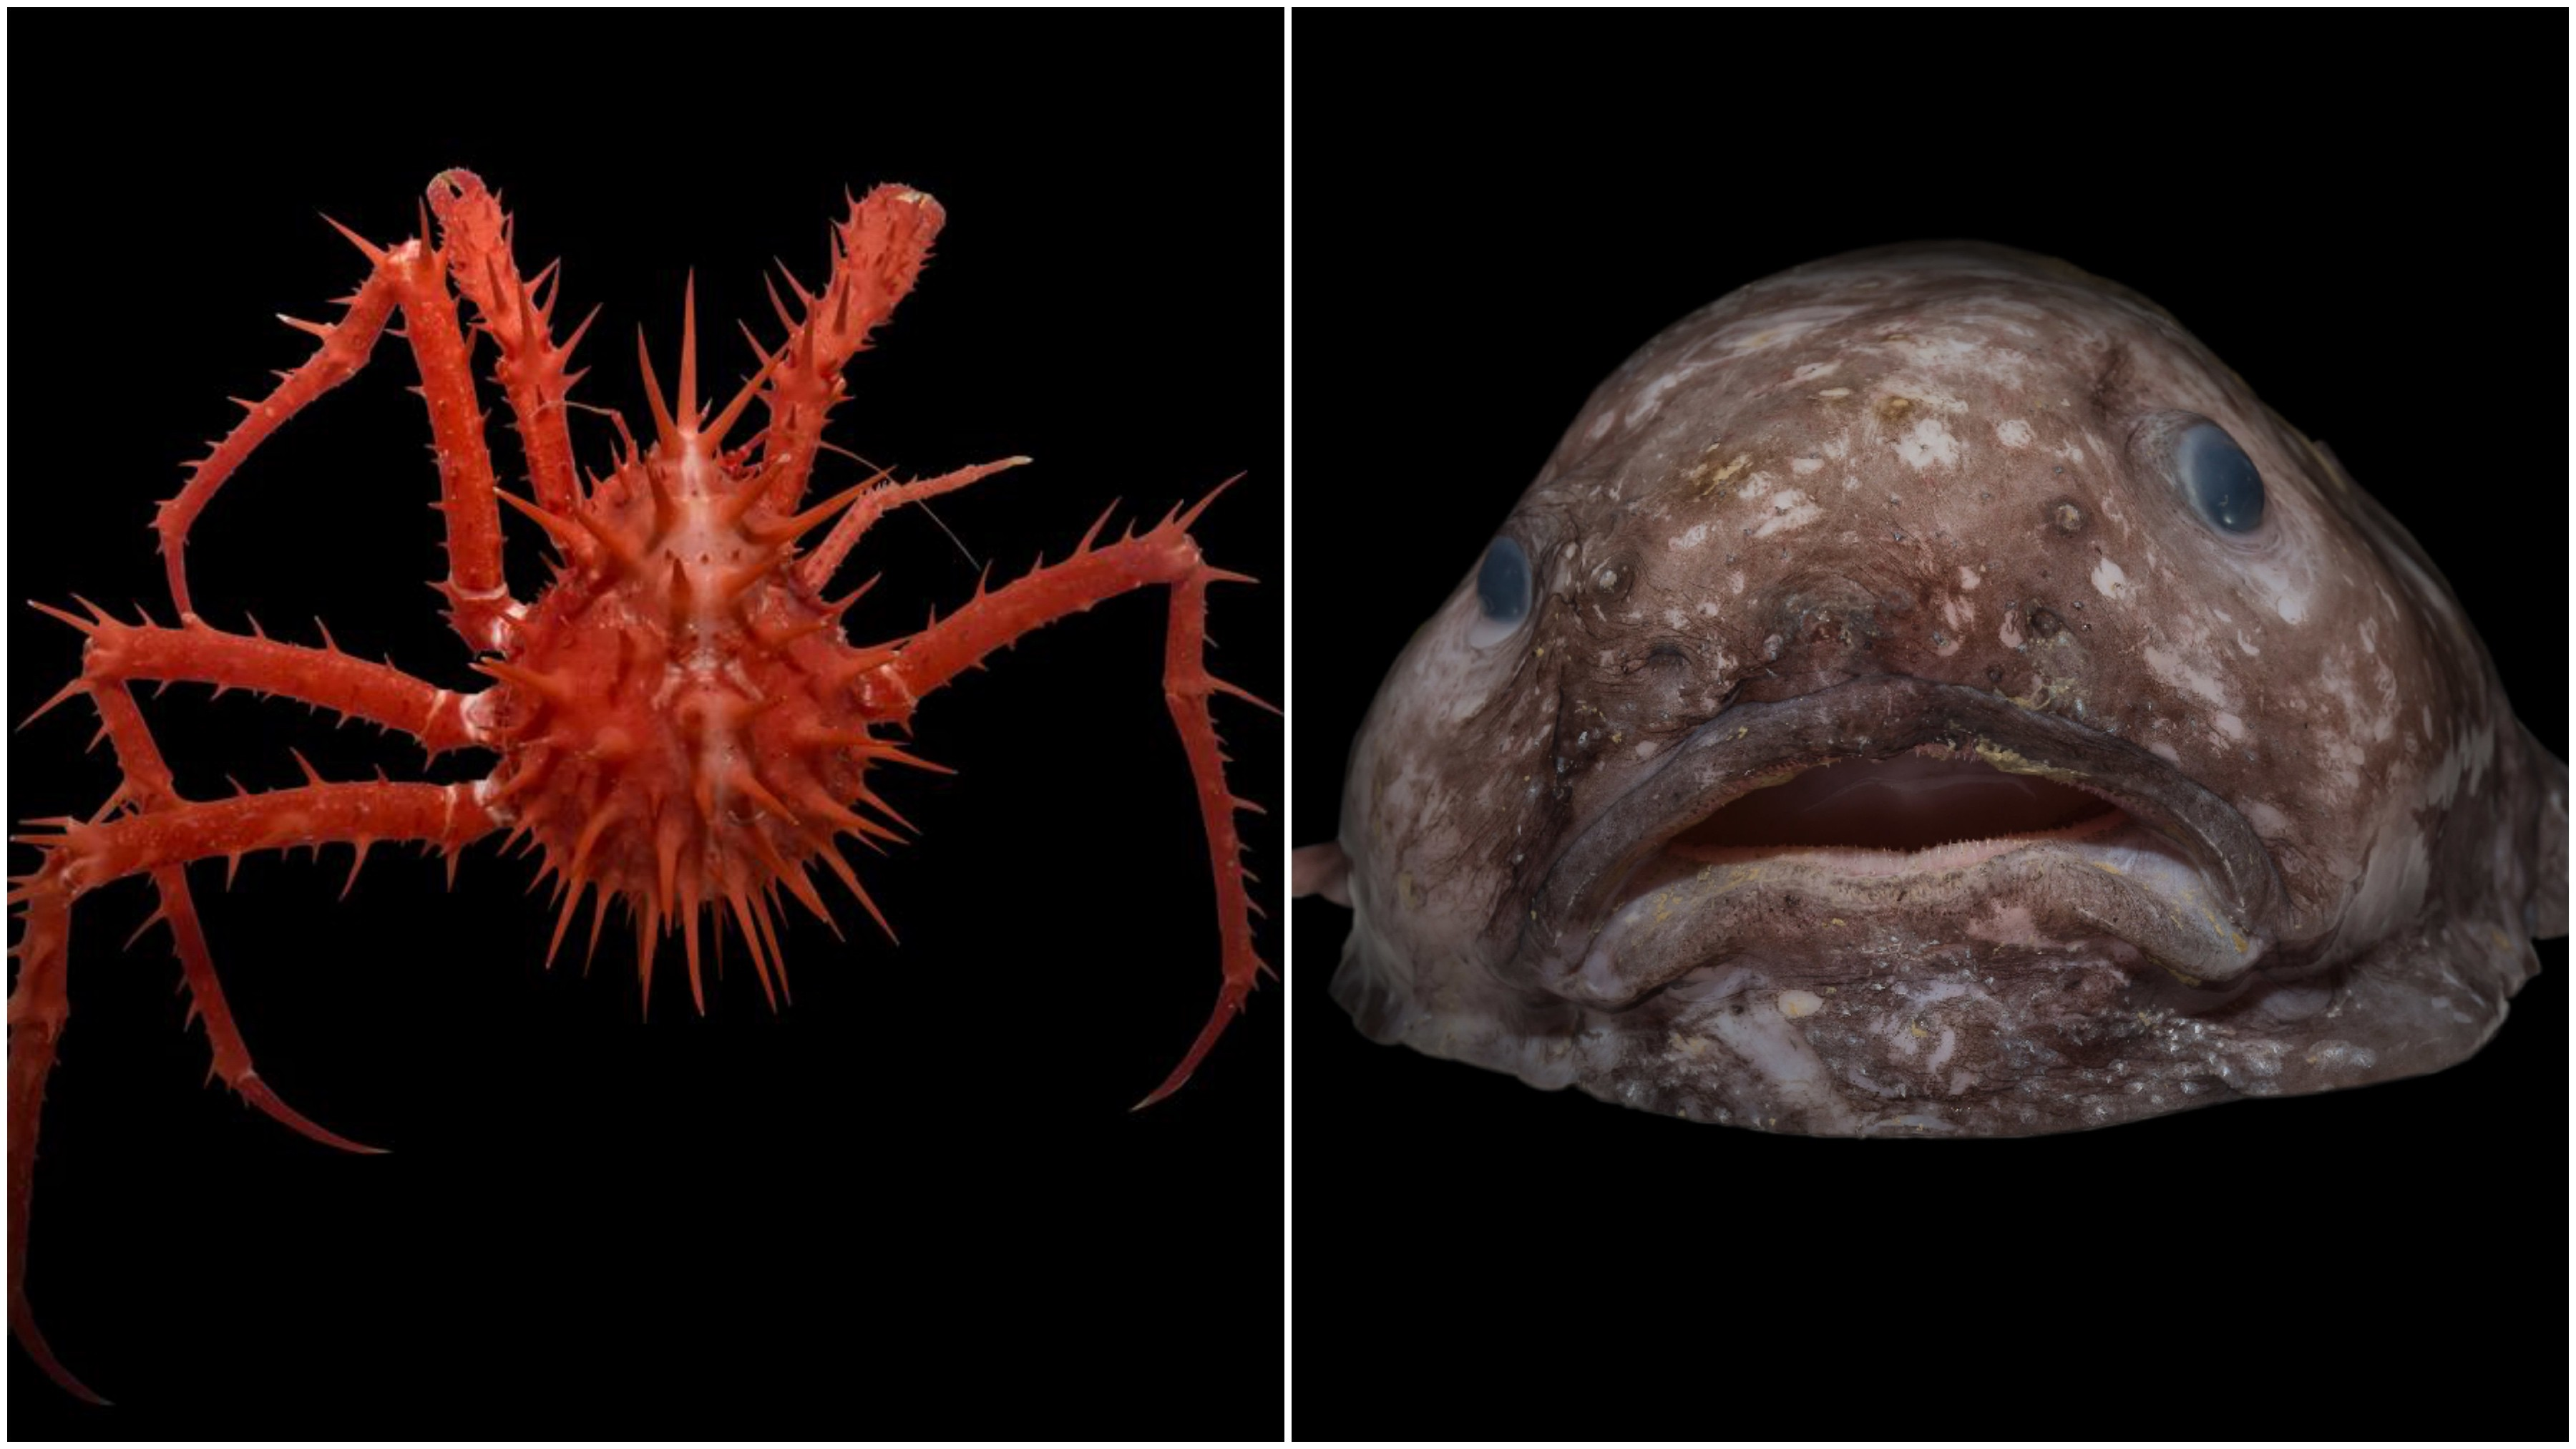 Meet Some of the Insane Creatures Found in the Deep Sea - Creators for Cute Deep Sea Creatures  150ifm